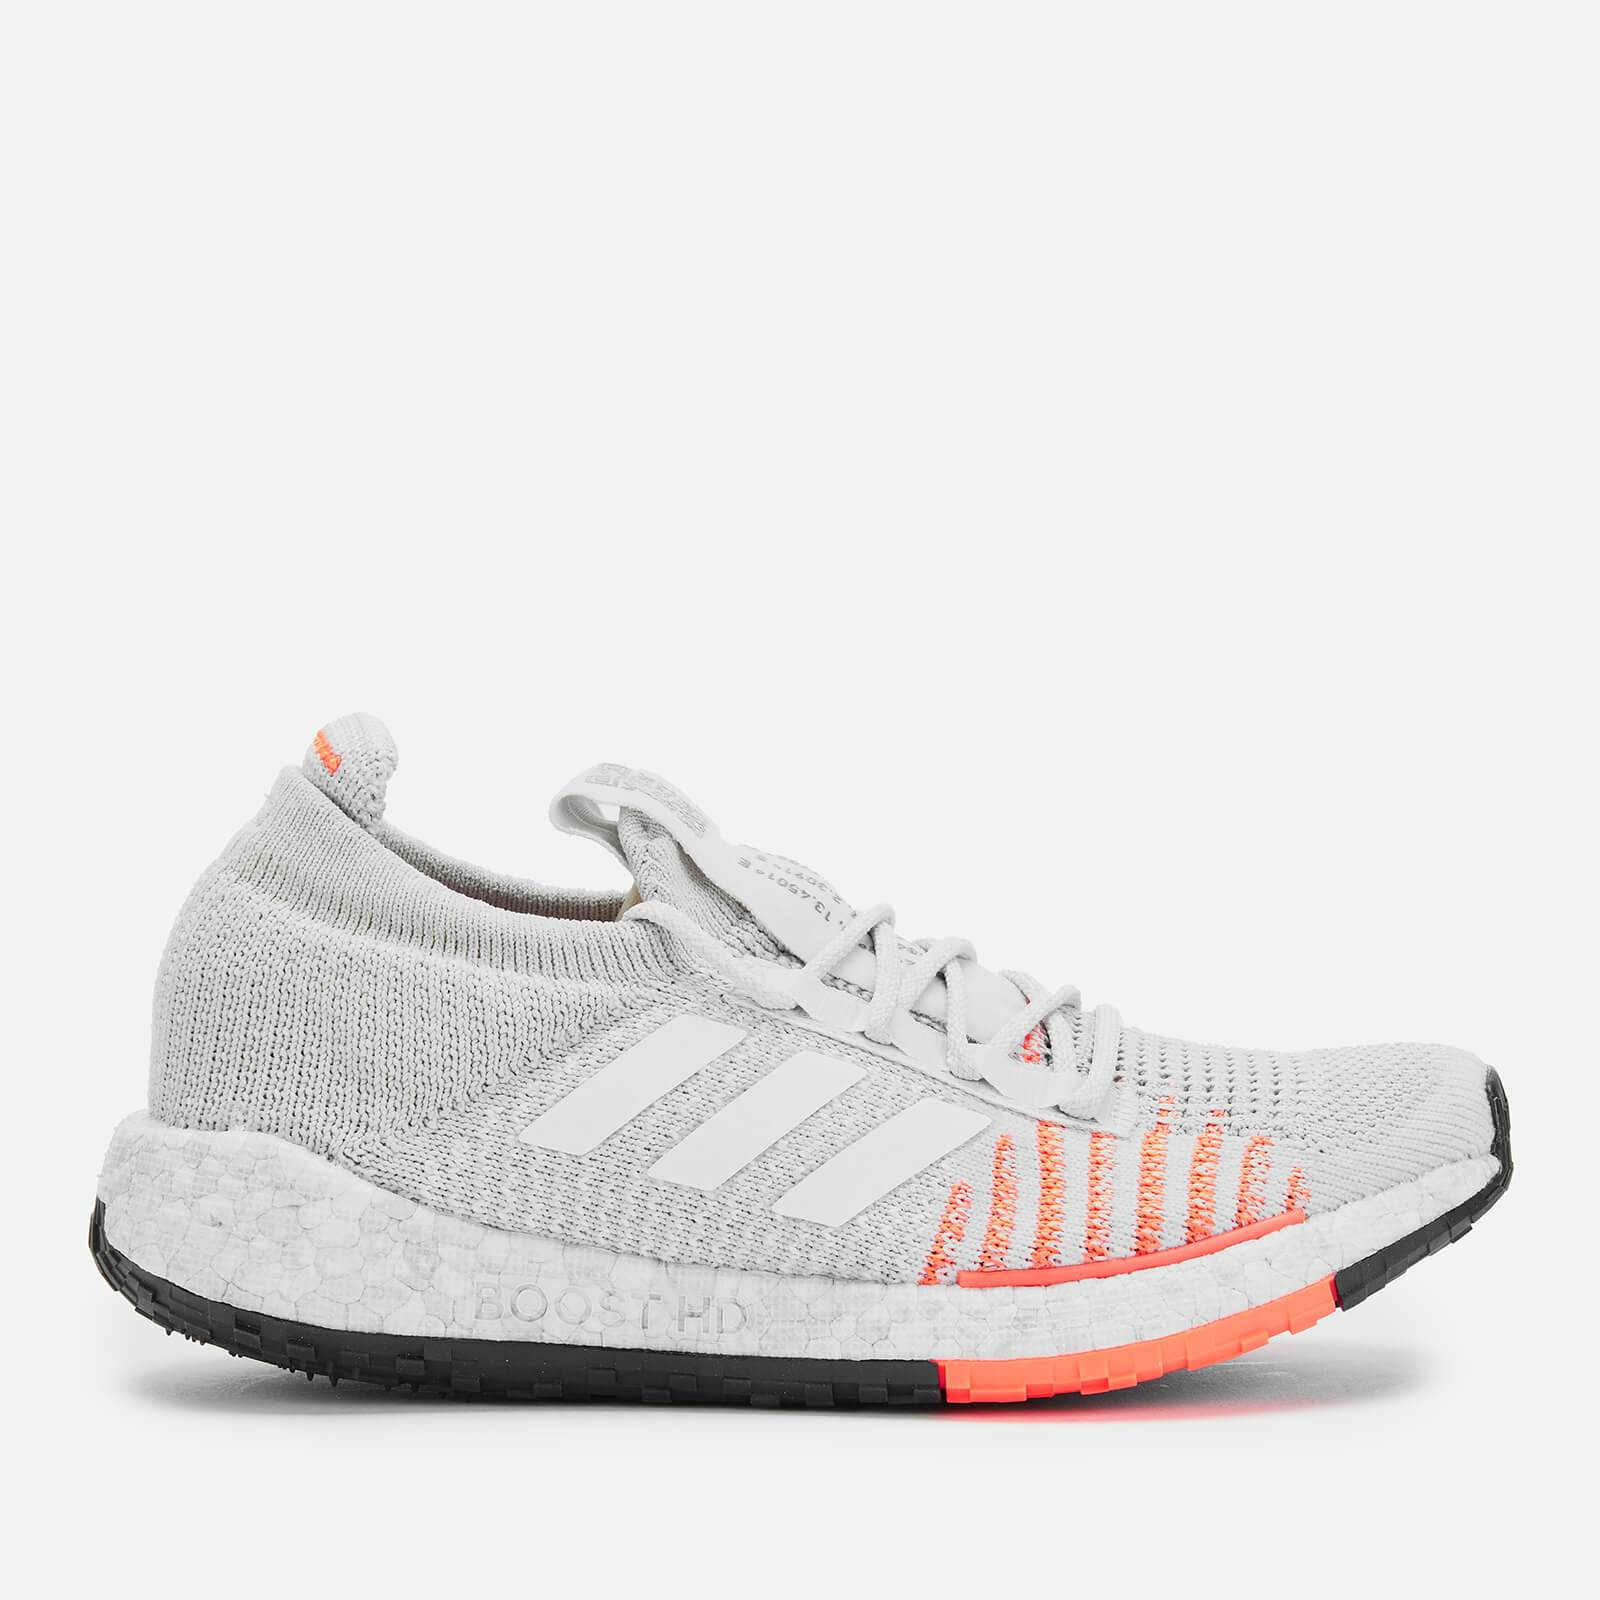 adidas Women's Pulse Boost HD Trainers - Grey/Orange - UK 5 - Grey